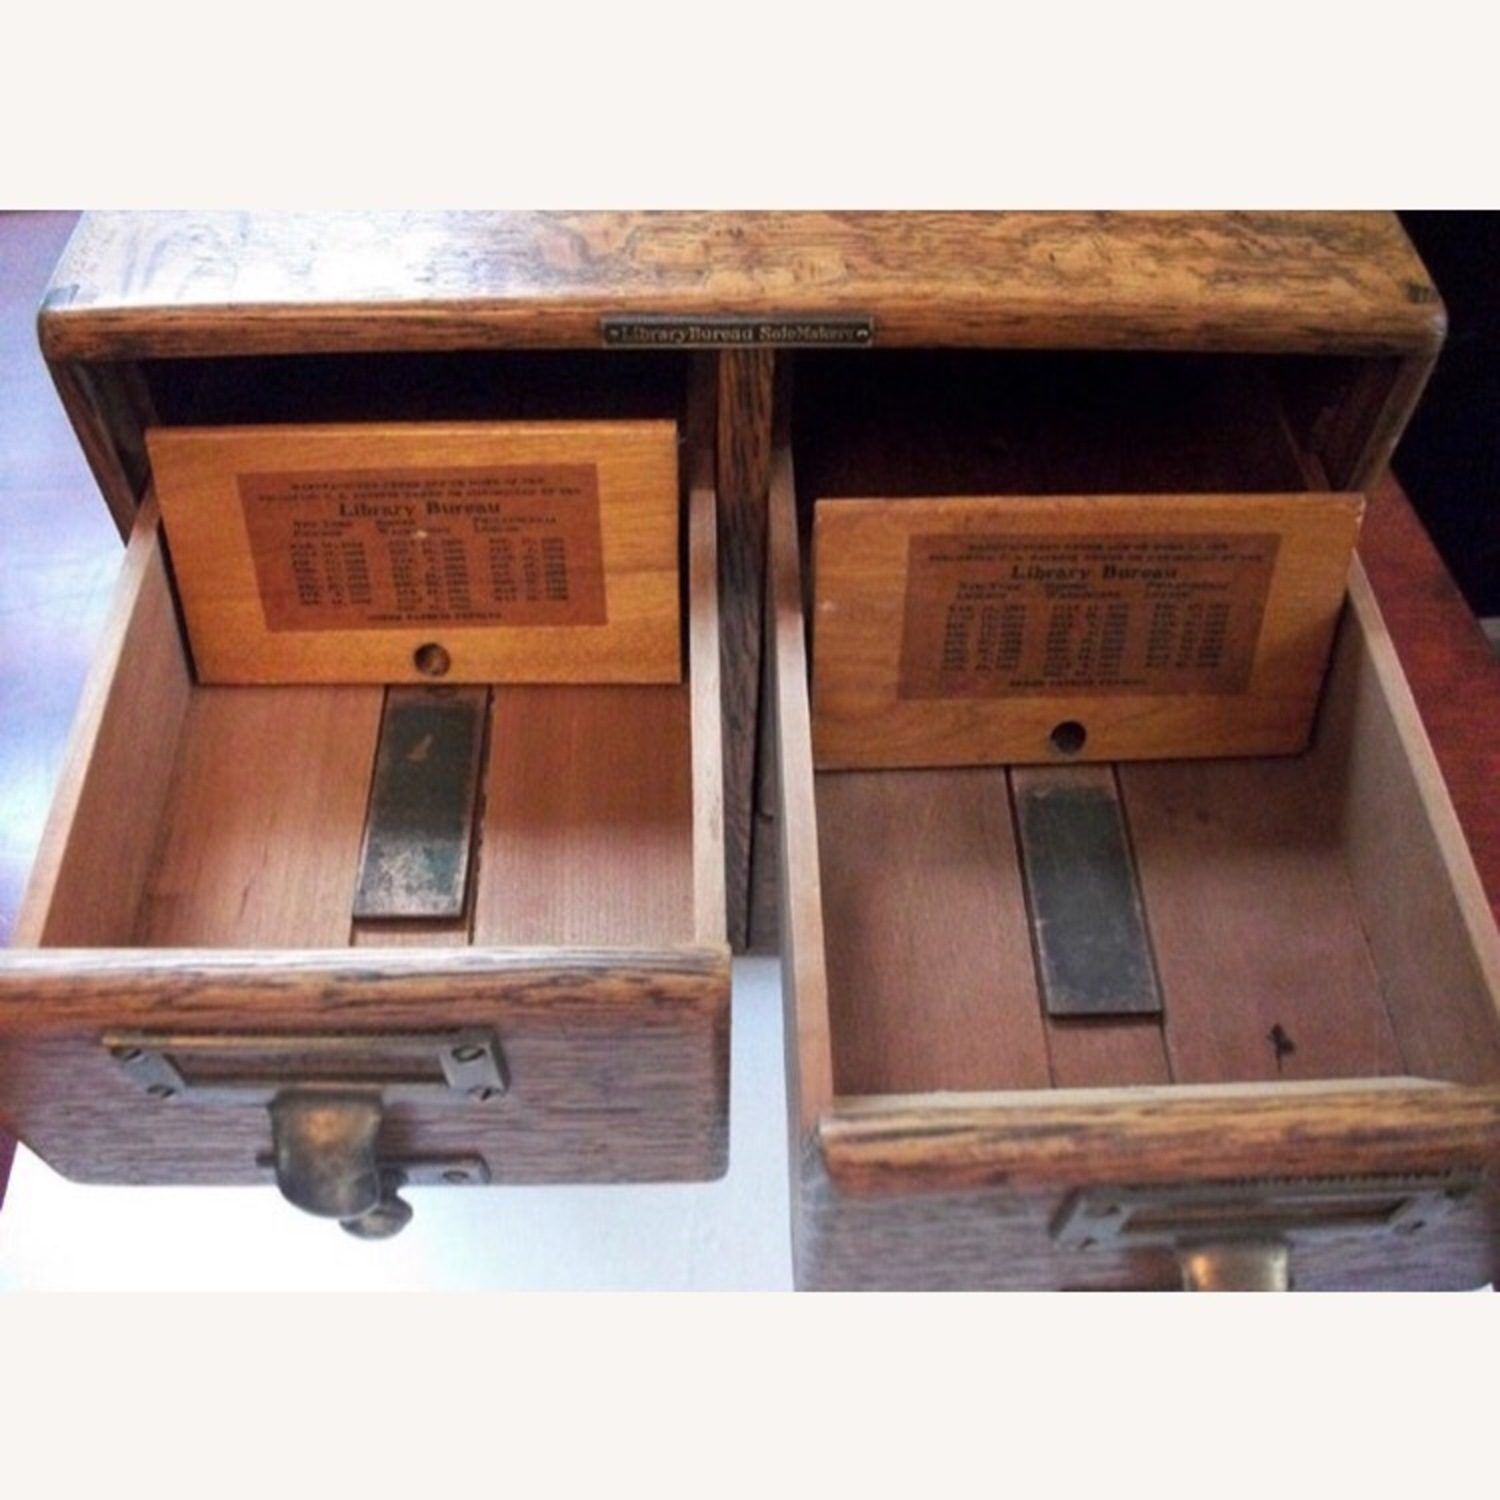 Antique 6 Drawer Library Card Catalog Circa 1890 - image-4